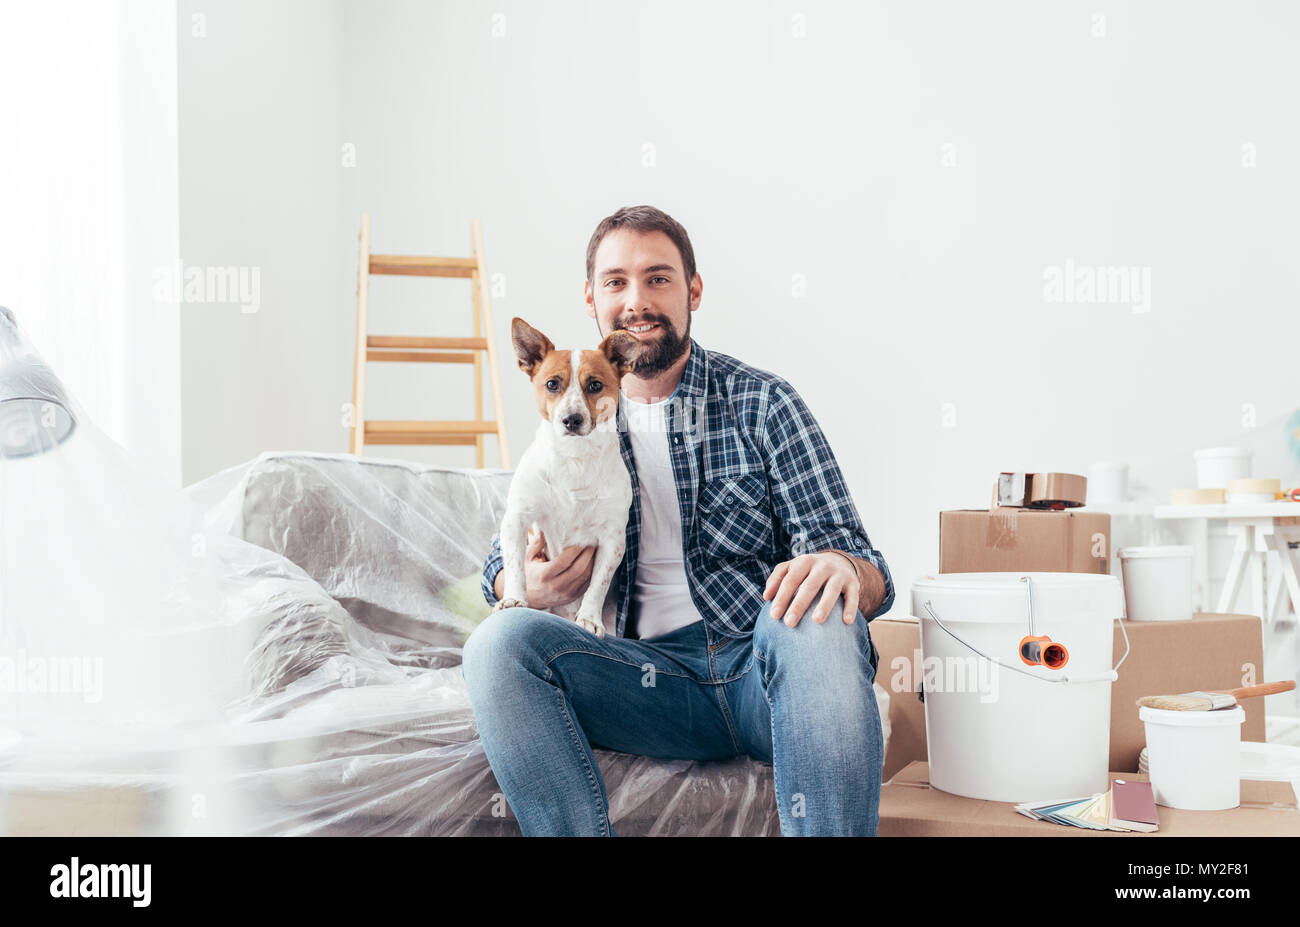 Happy dog owner posing with his pet in his new house during renovation, boxes and ladder on the background - Stock Image